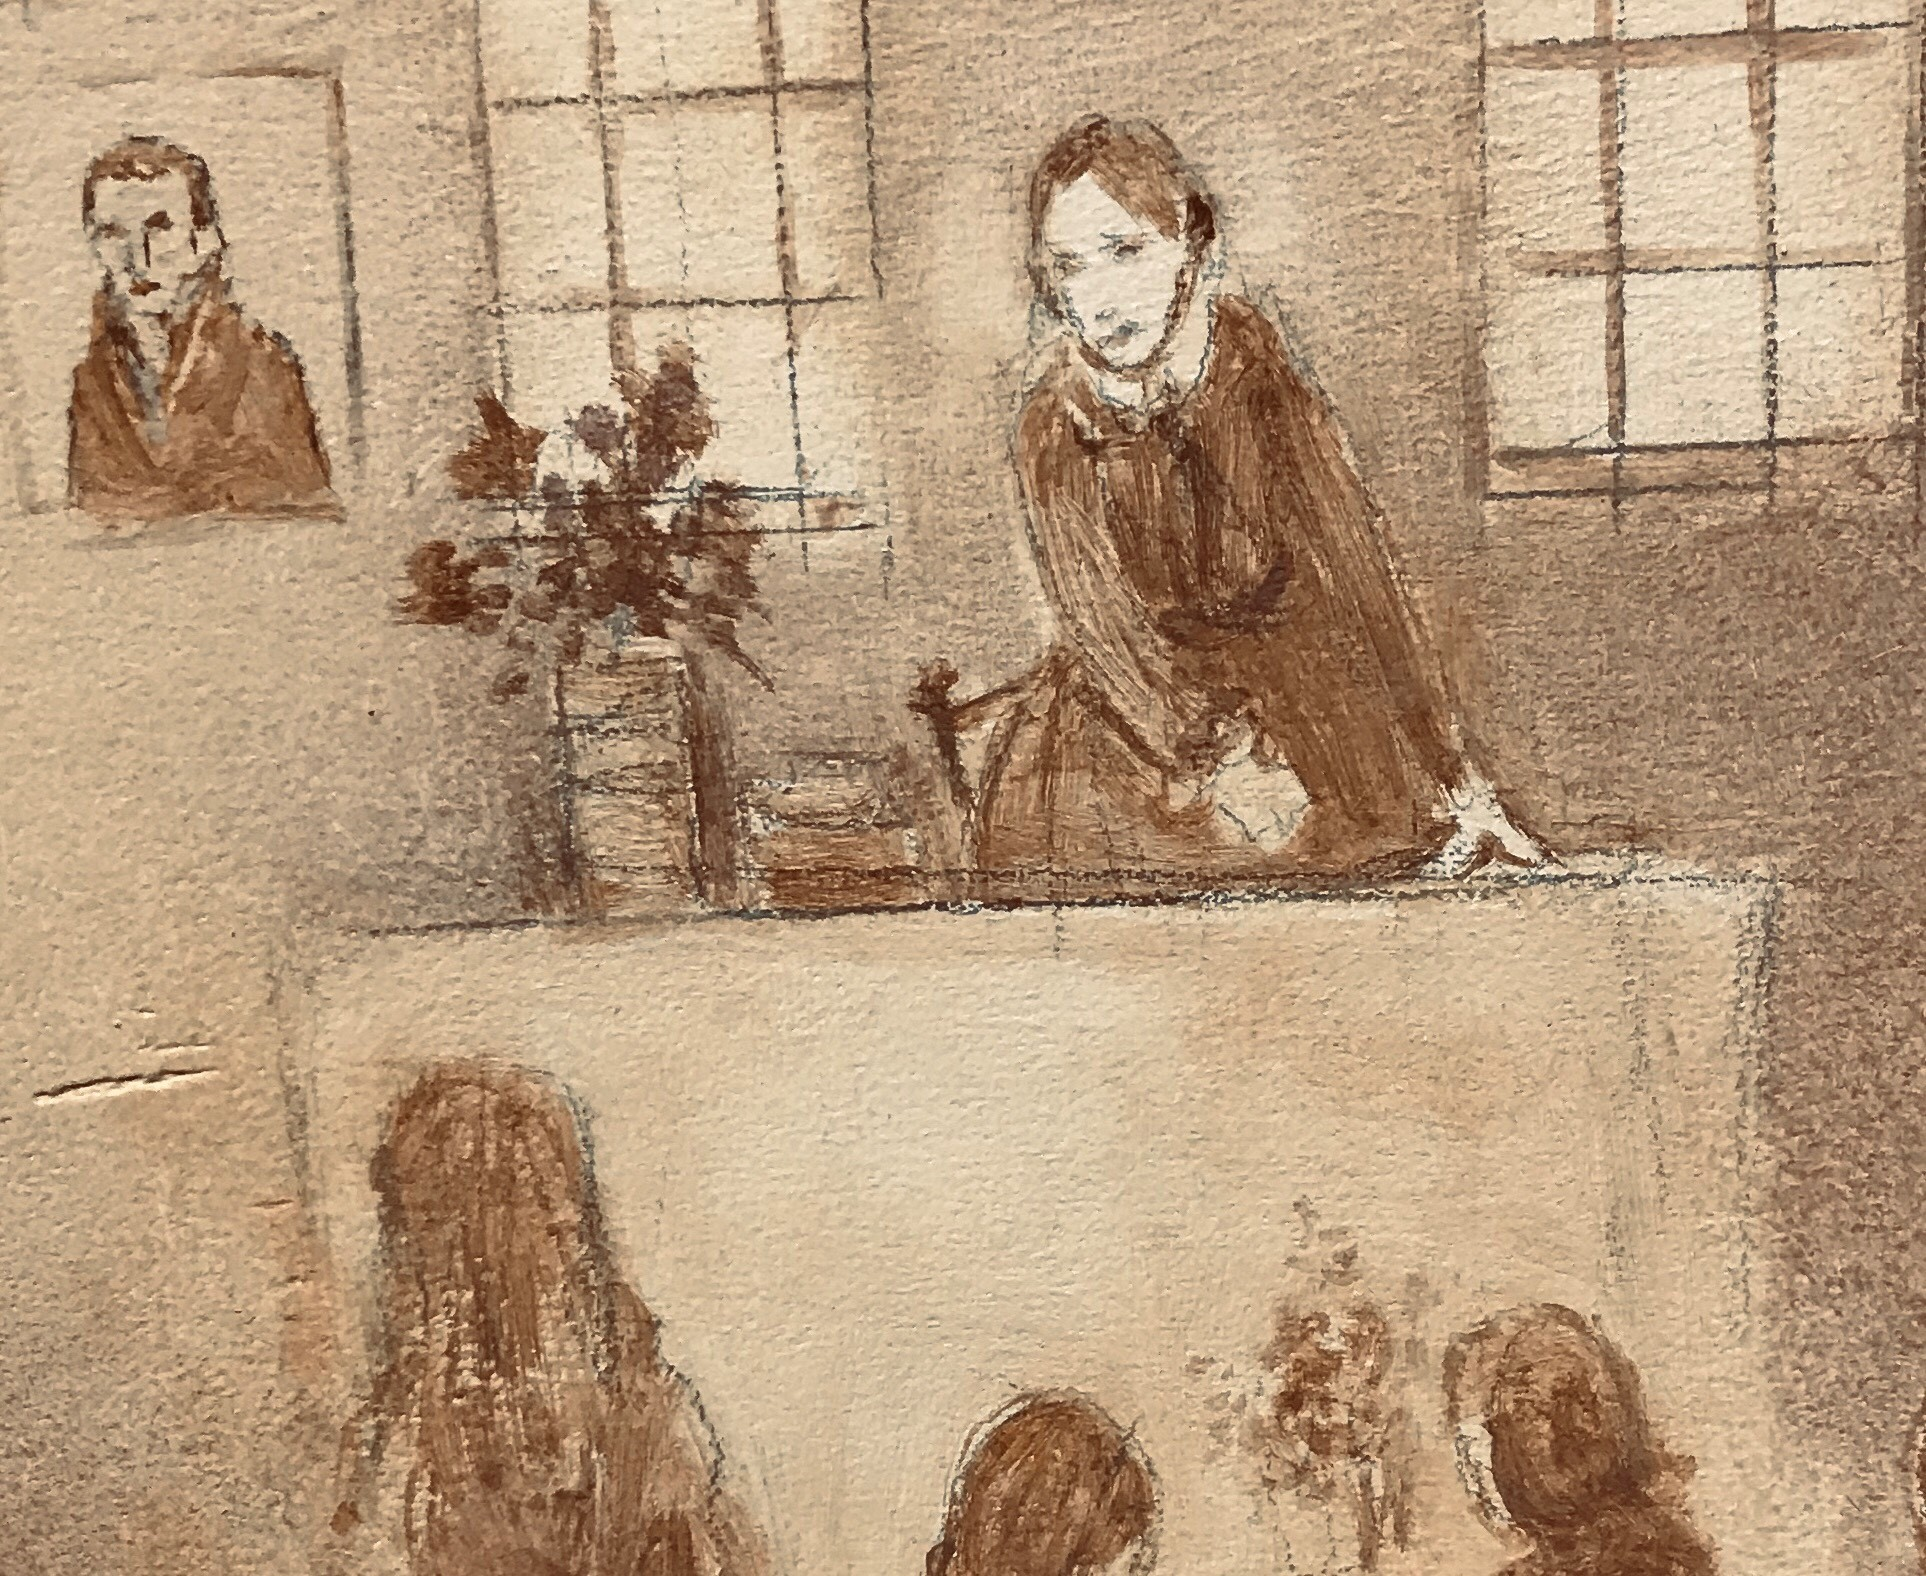 Detail from the Octavia Hill story mural in the reception area of the museum showing Caroline Hill teaching at the infants' school in Wisbech, which she and her husband founded and which is now the Angles Theatre